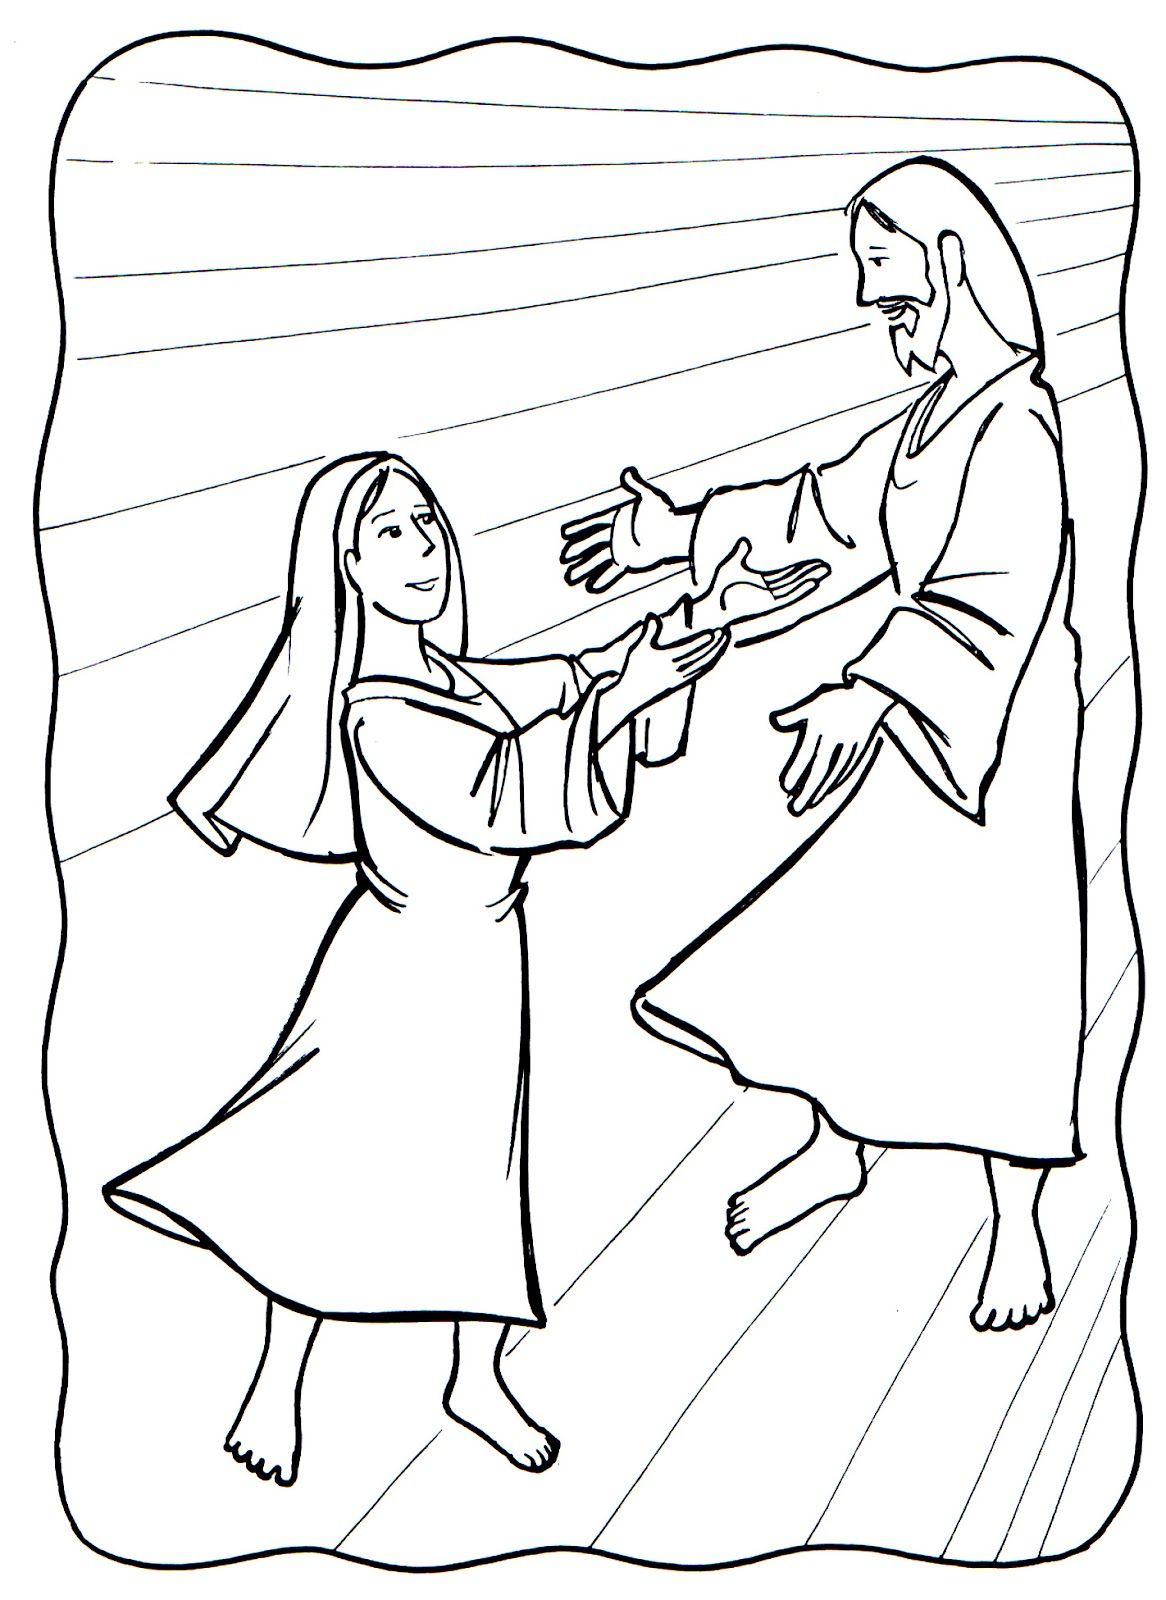 The Assumption of Mary Coloring Page   Catholic Feast of the ...